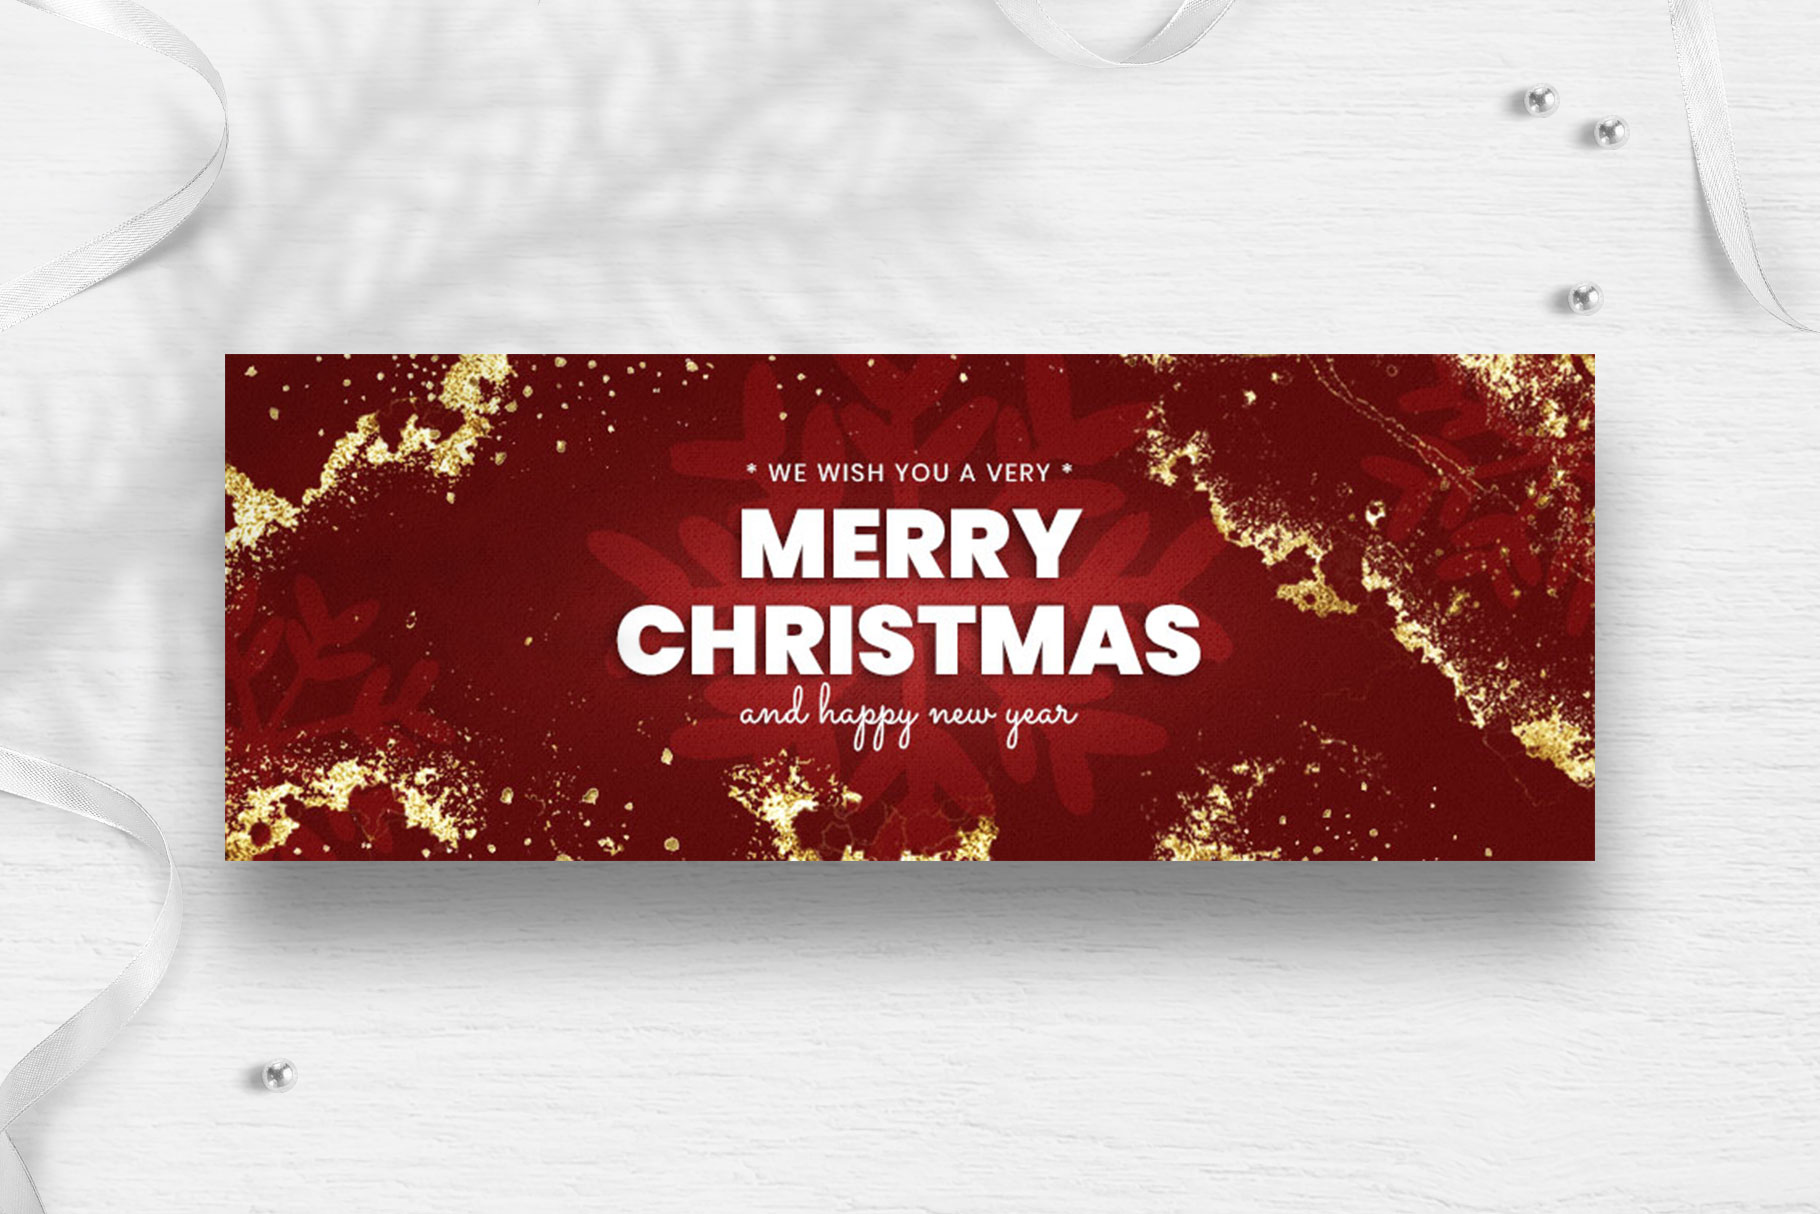 Merry Christmas Facebook Cover Template example image 4